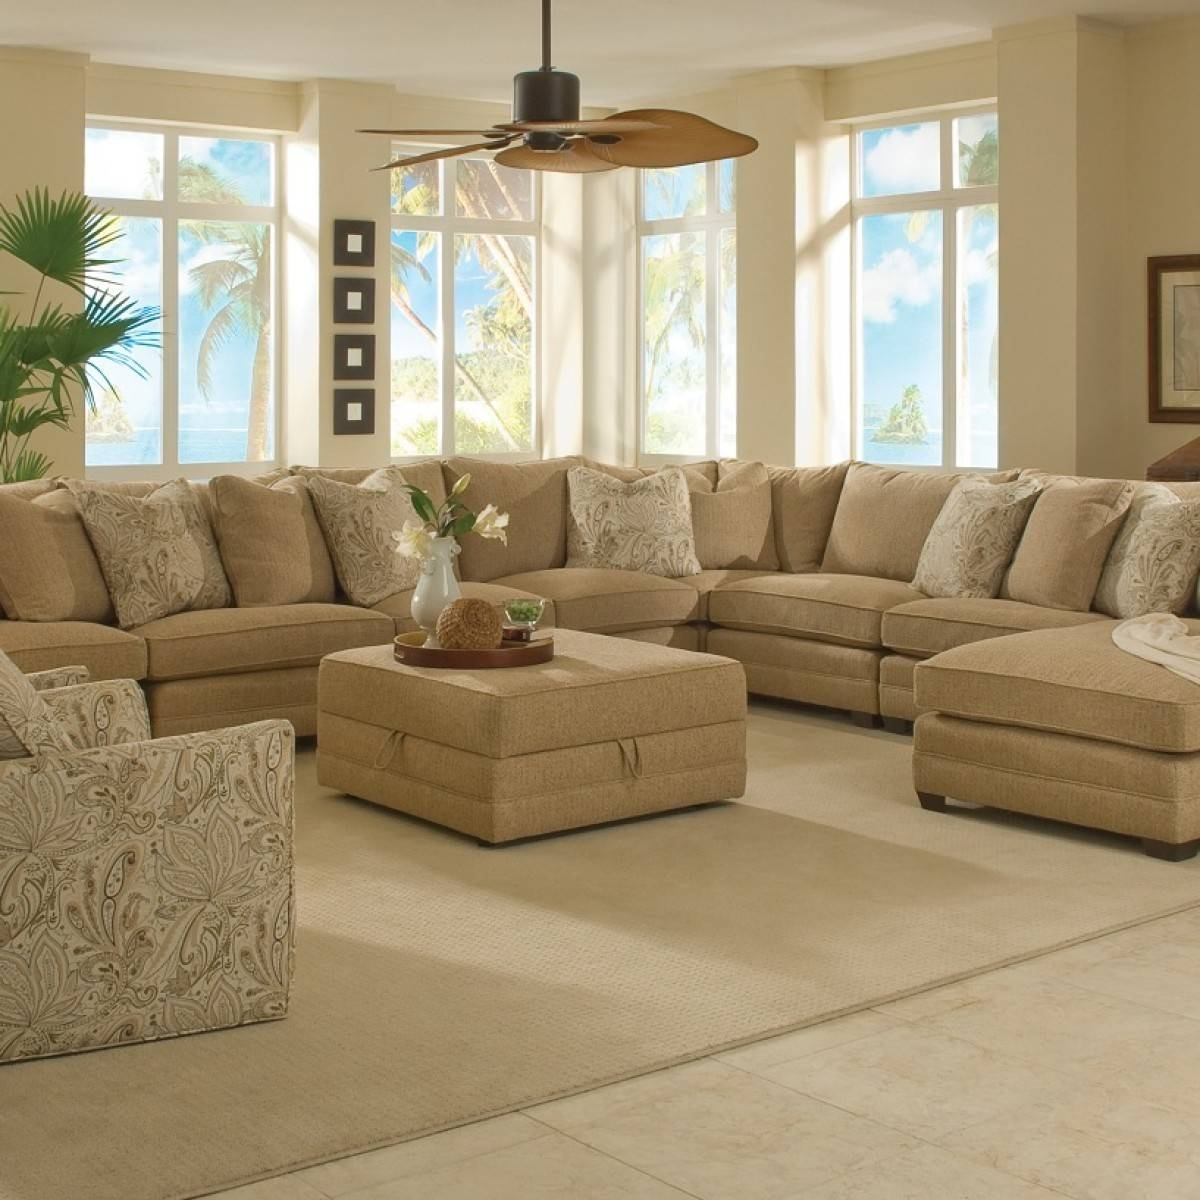 Furniture: Nice Extra Large Sectional Sofa For Large Living Room Within Sectional Sofa With Large Ottoman (View 15 of 30)